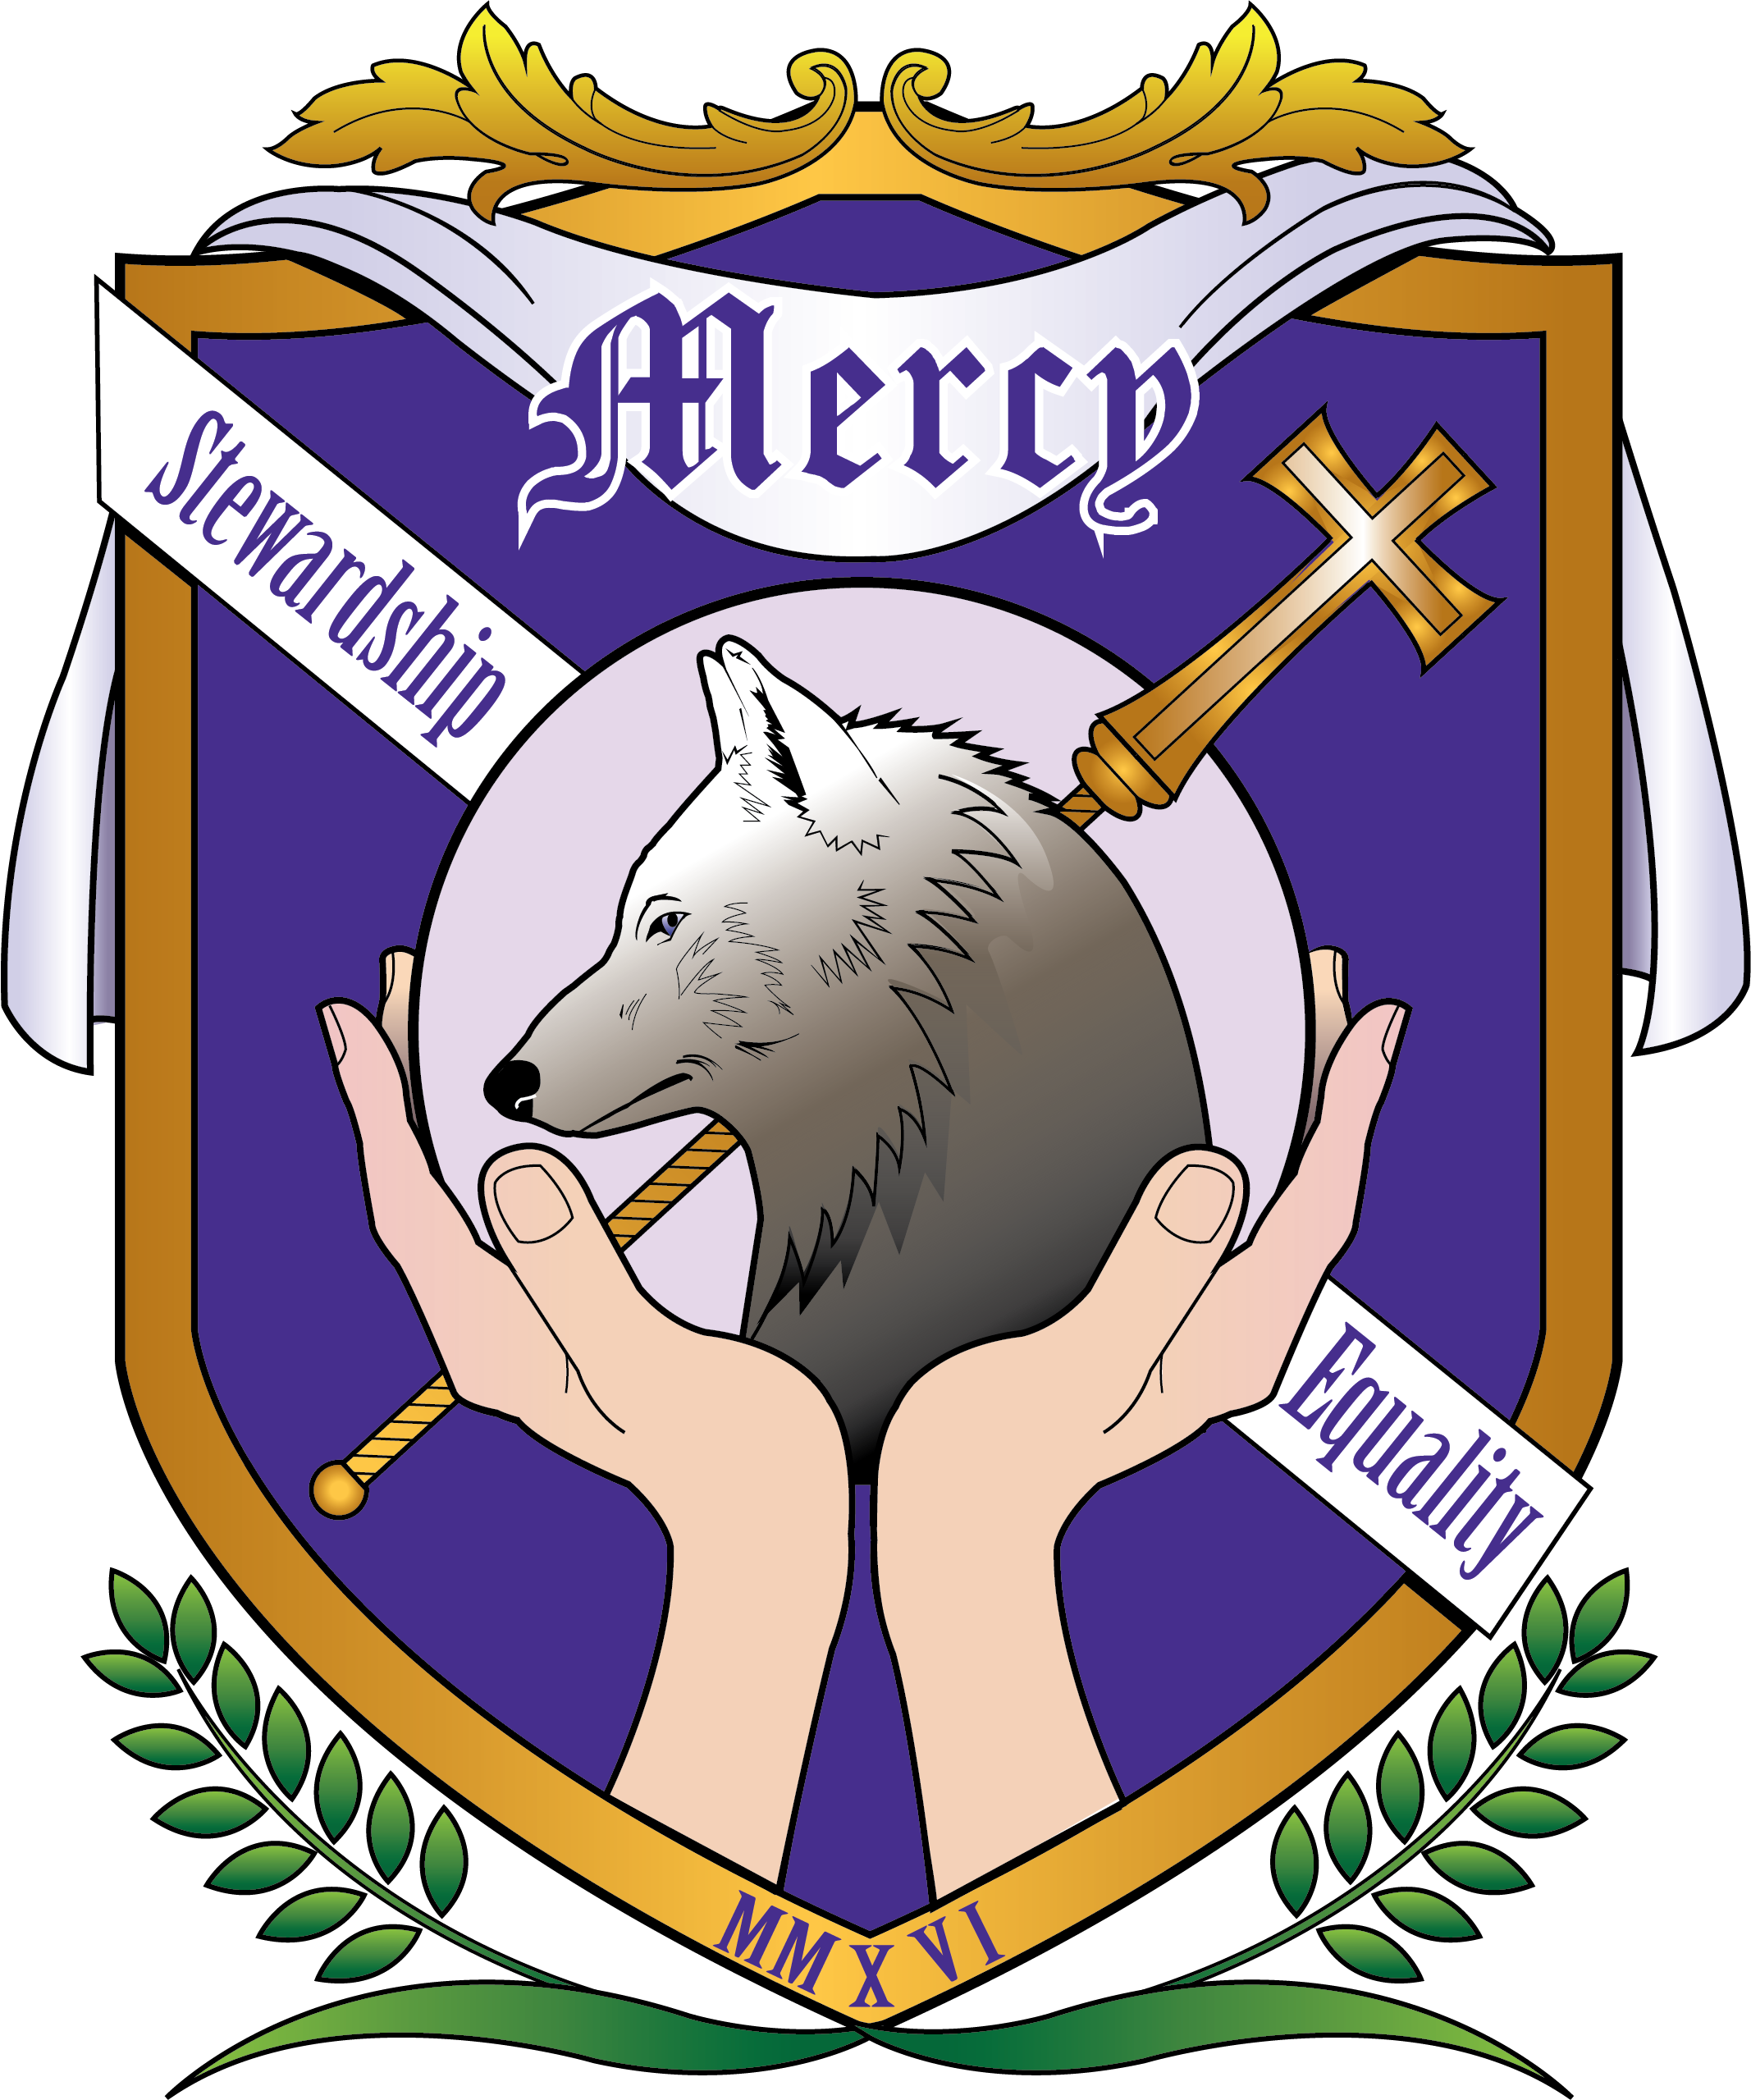 Crest of Mercy Hosue